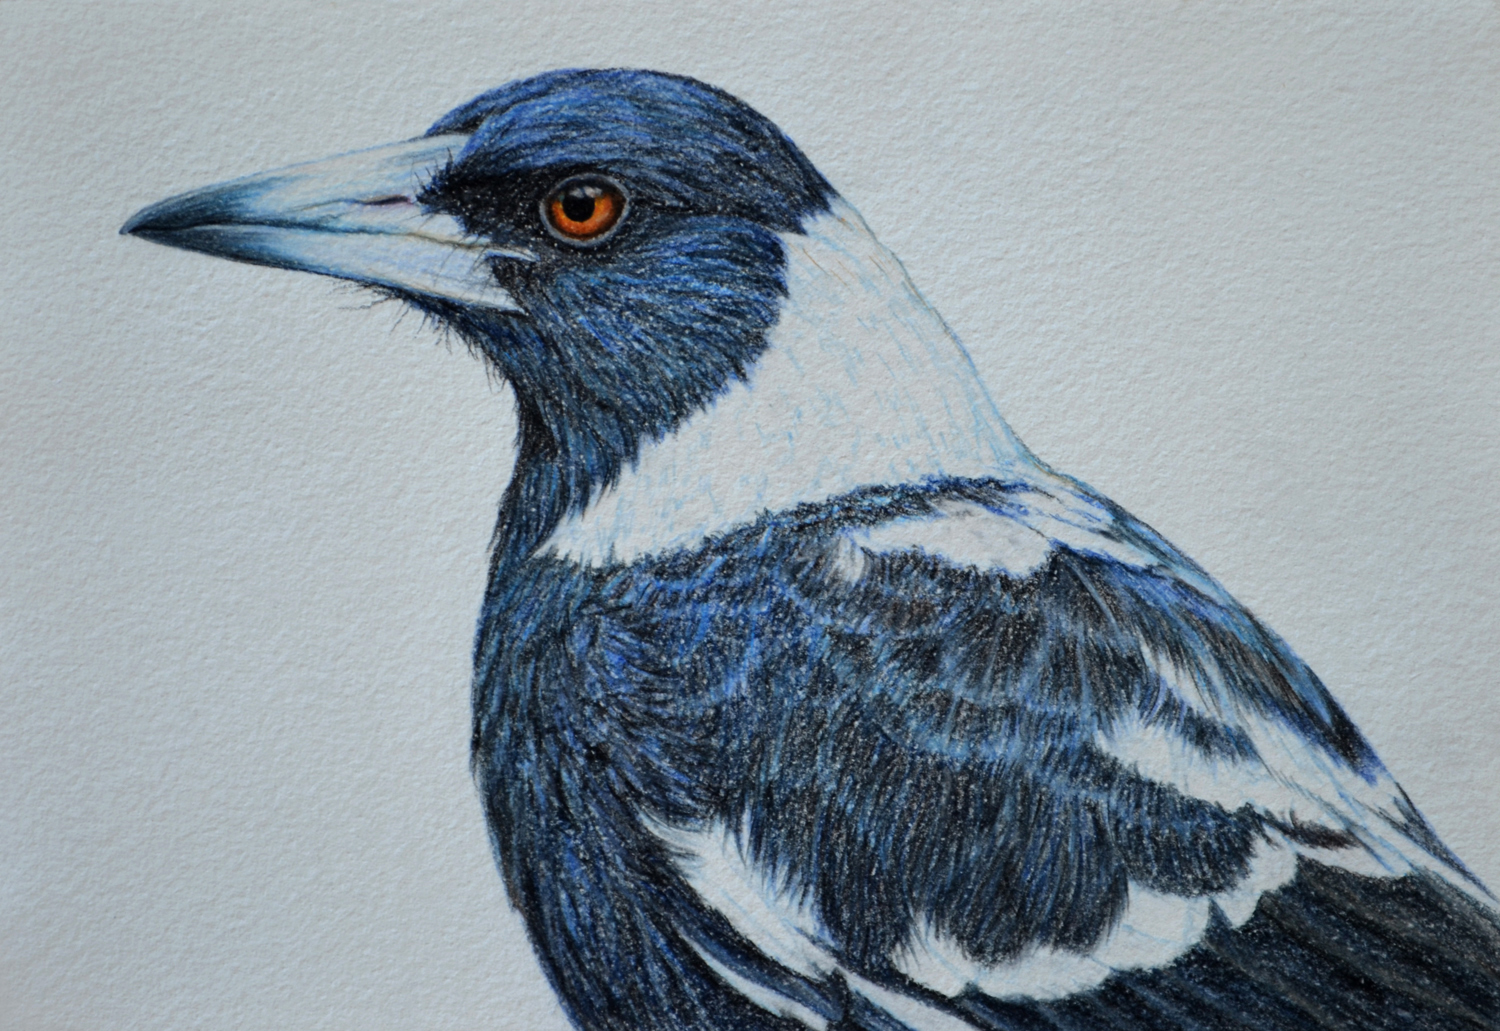 Australian Magpie II  21 x 30 cm    Drawing, Carbothello pastel on handmade paper  $650 framed   click to view in Birdland series gallery 1